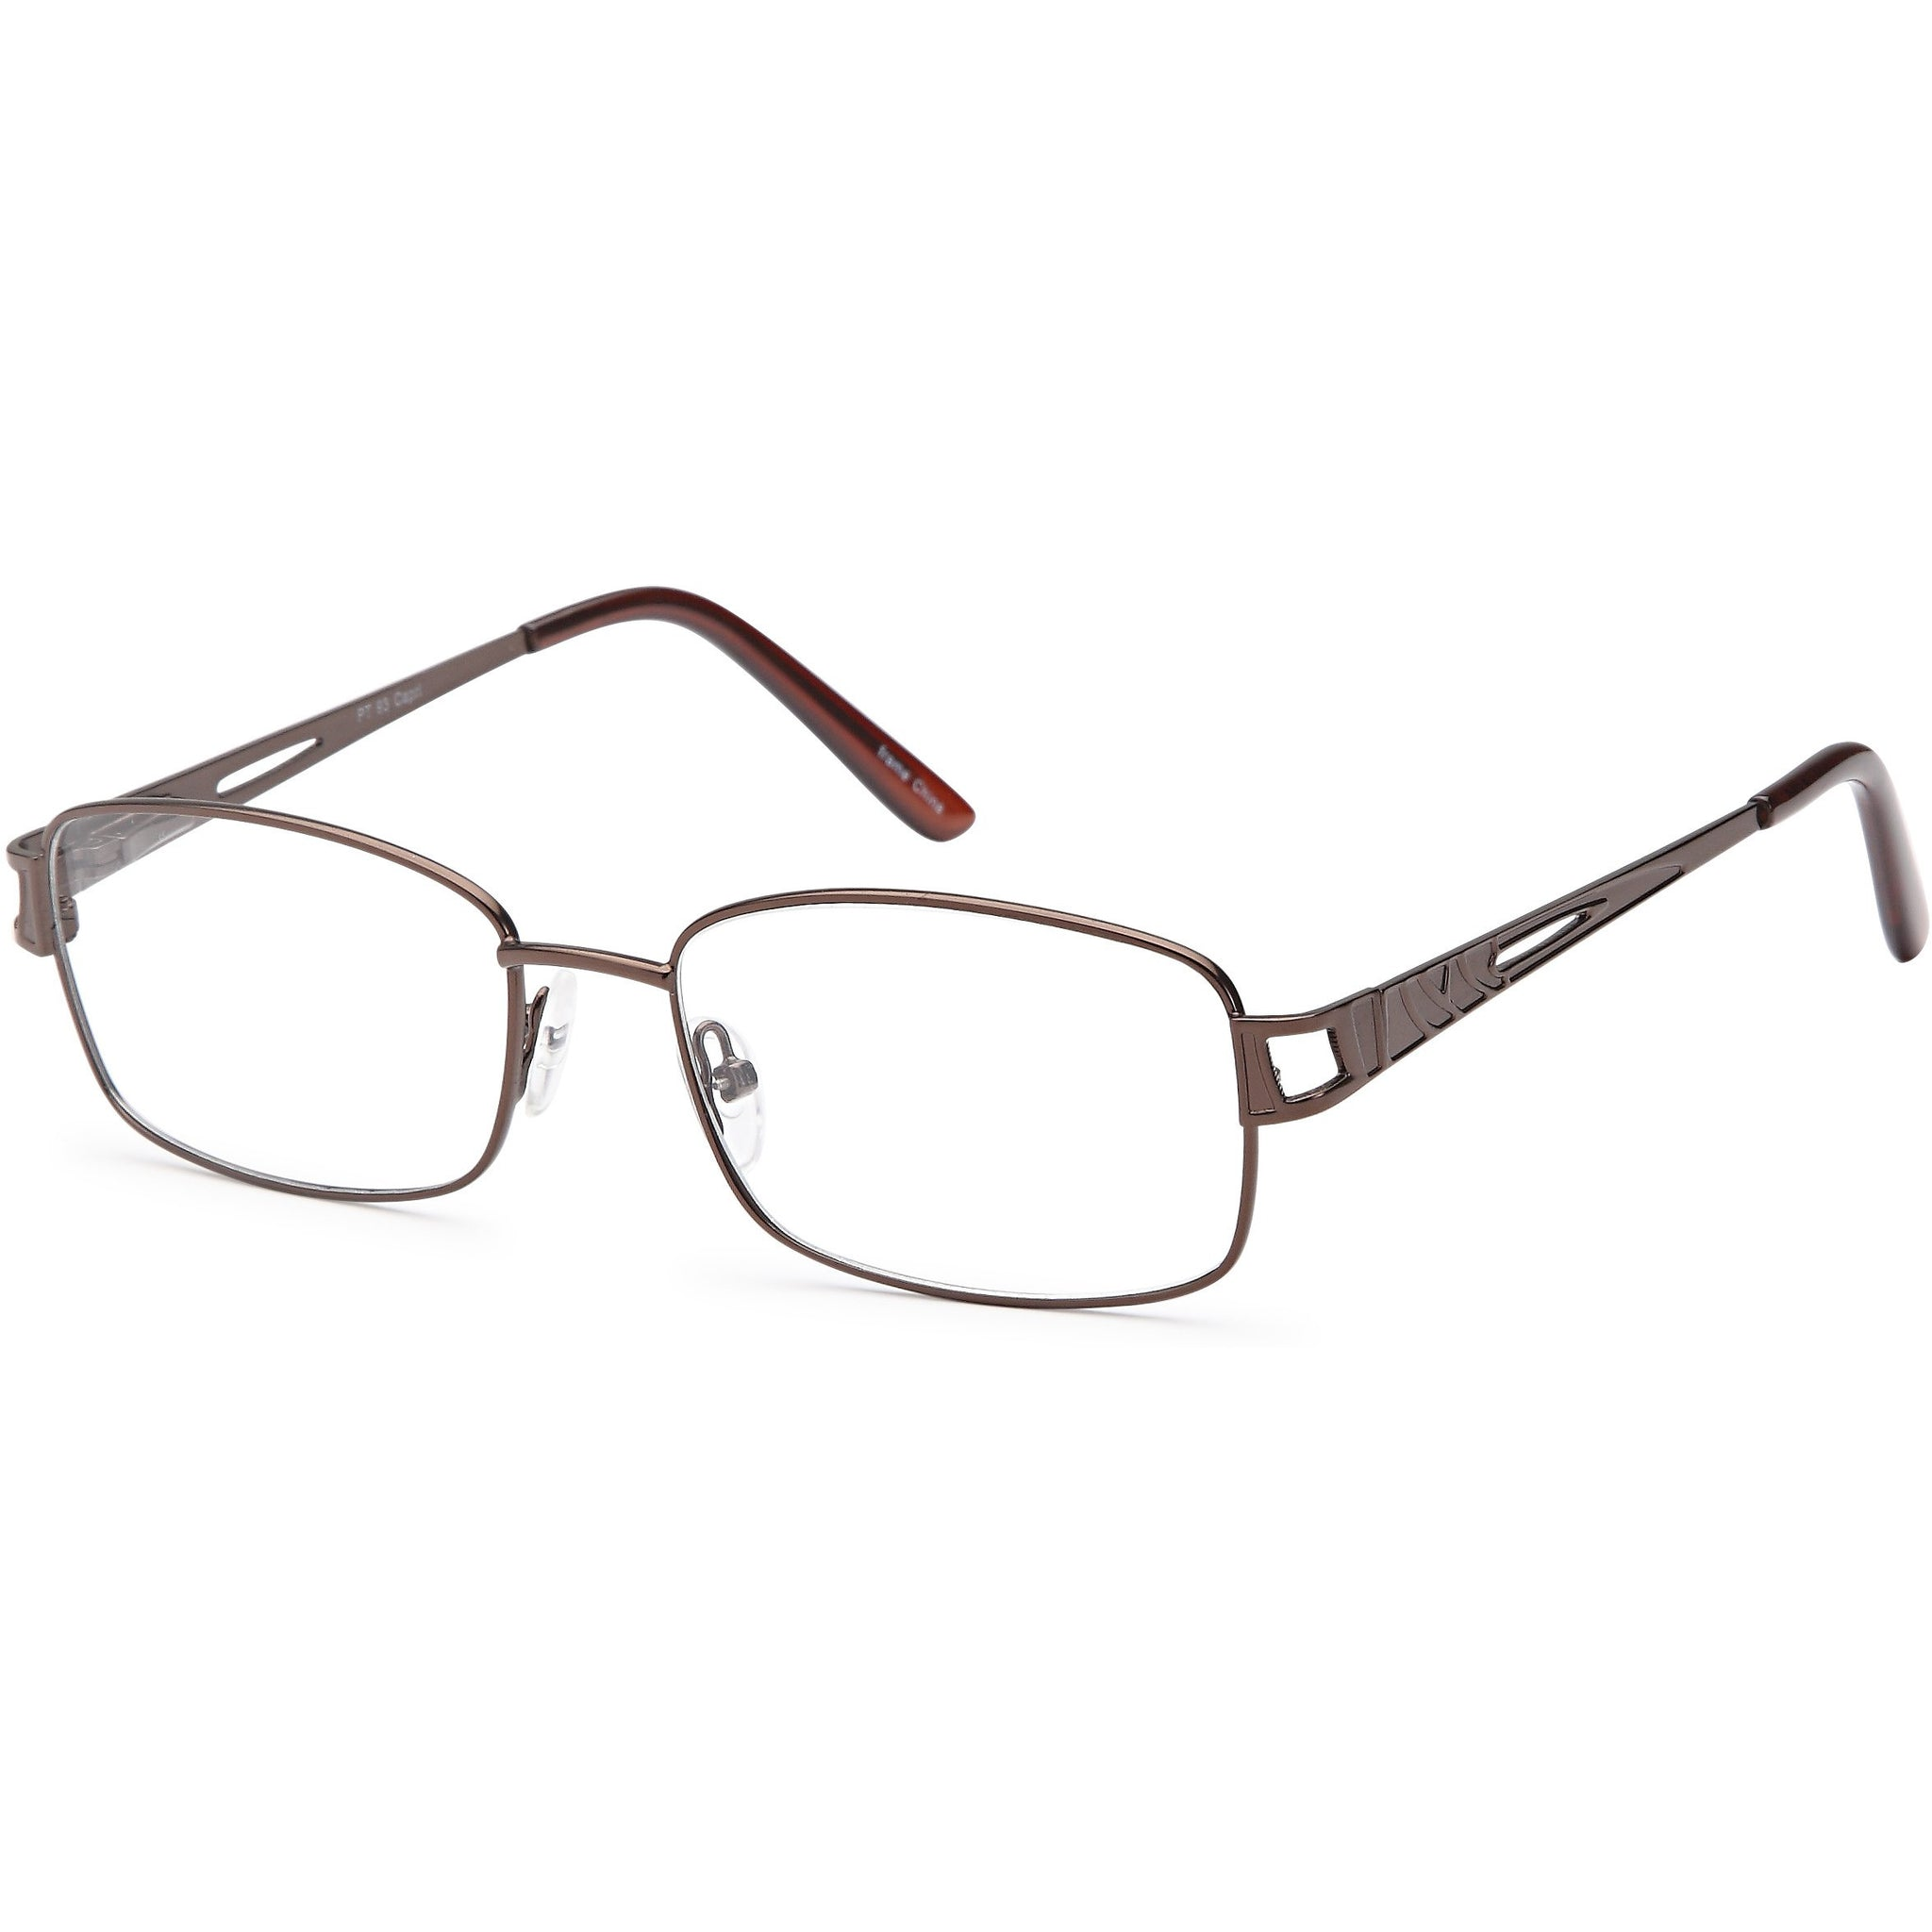 Appletree Prescription Glasses PT 93 Eyeglasses Frame